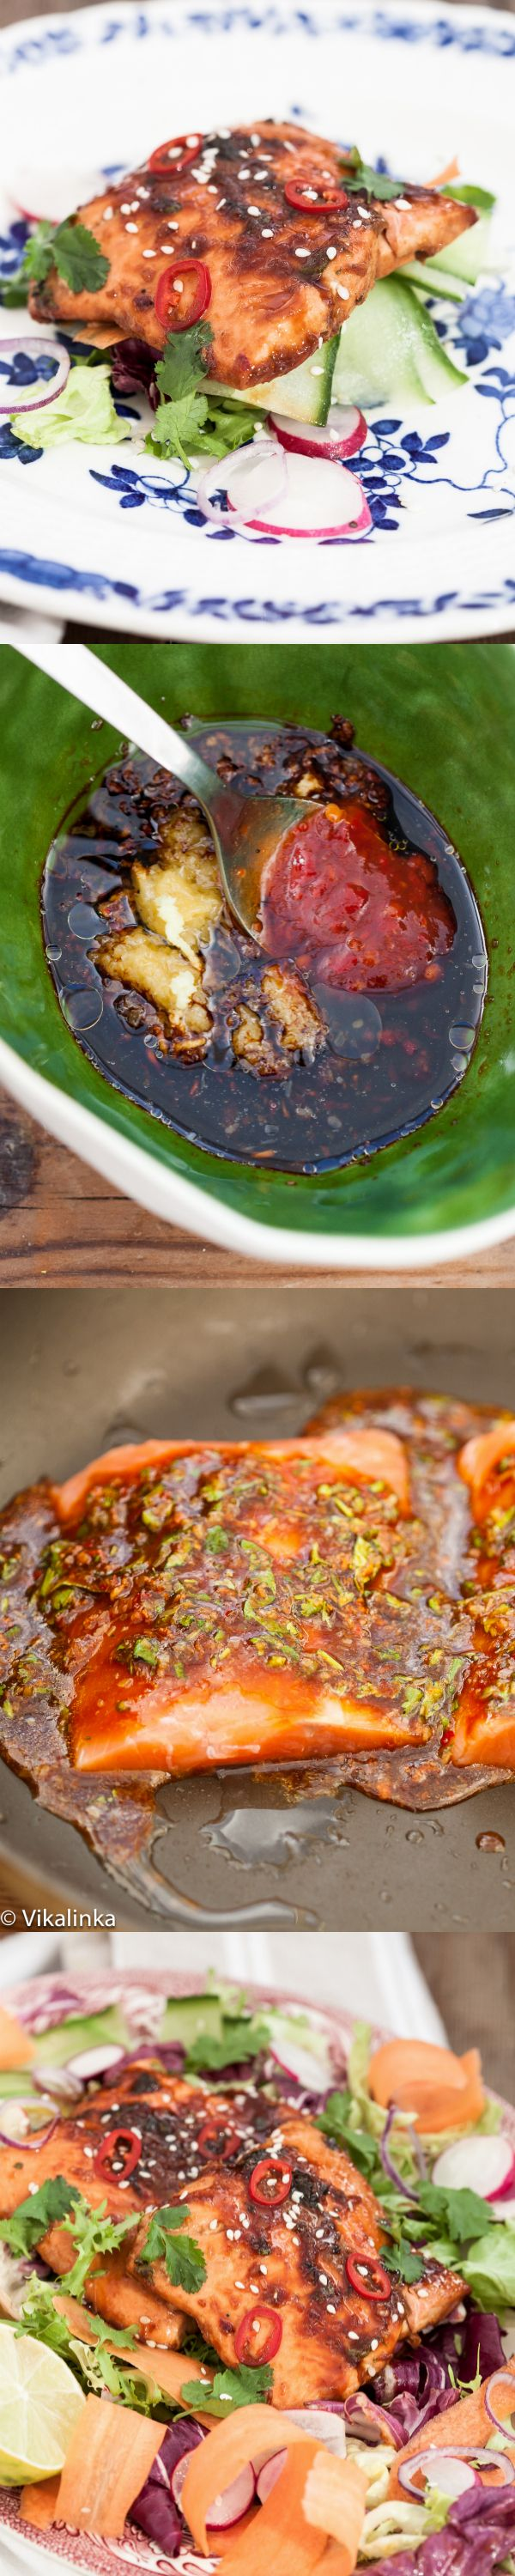 Ginger and Soy Glazed Salmon   Recipe